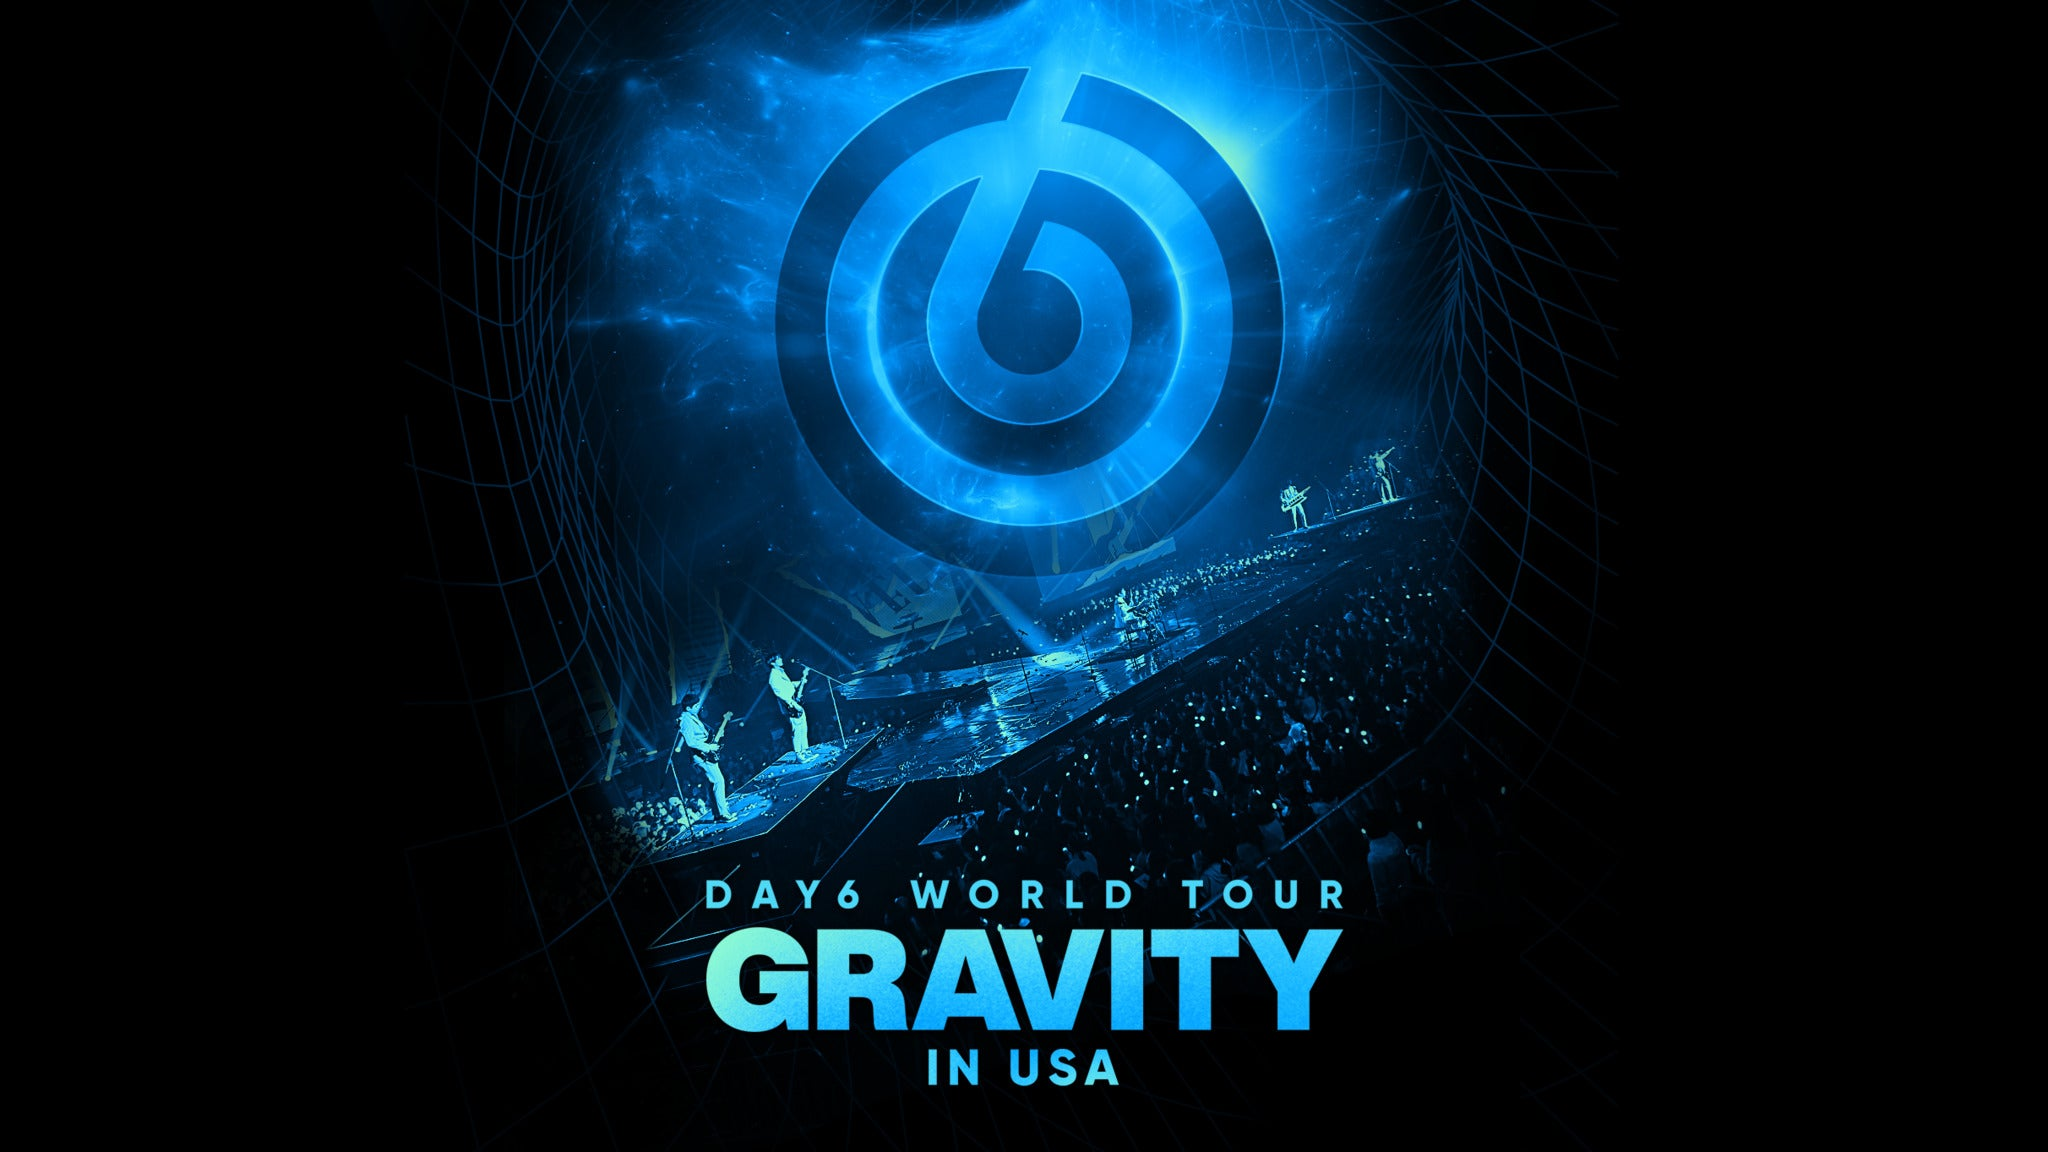 DAY6 WORLD TOUR 'GRAVITY' IN CHICAGO